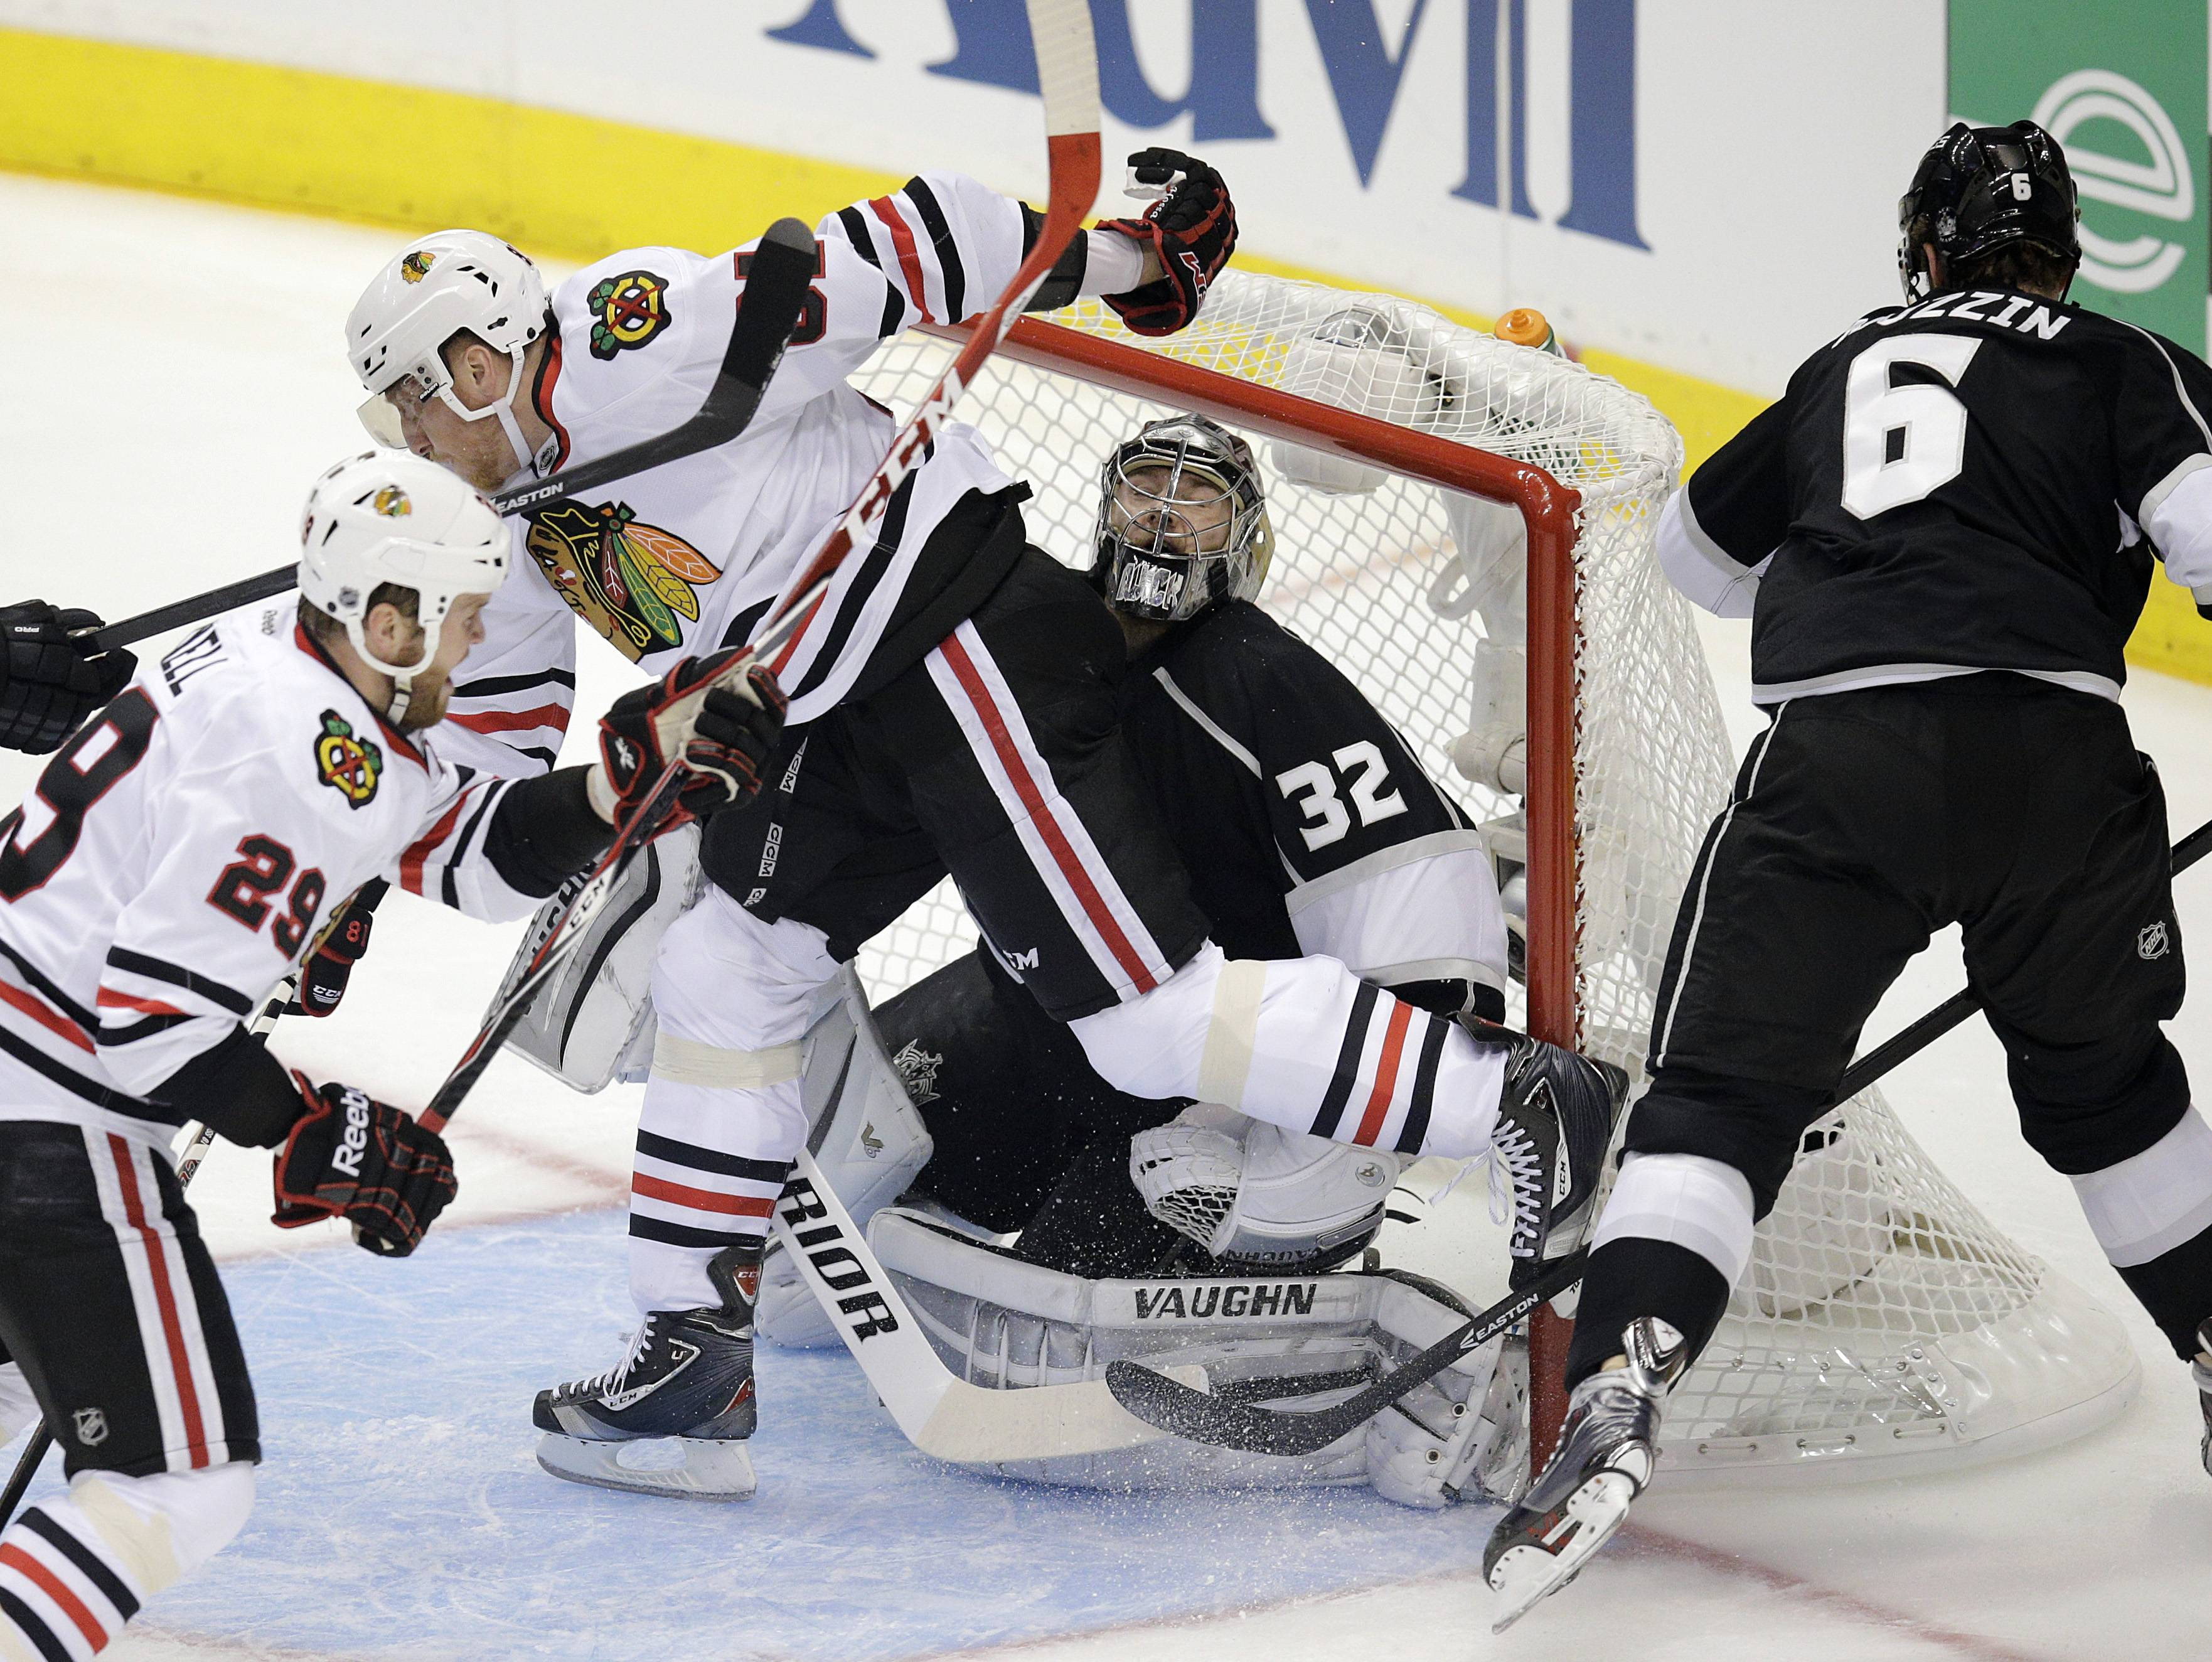 Chicago Blackhawks' Marian Hossa, center left, of Slovakia, collides with Los Angeles Kings goalie Jonathan Quick, second from right, during the first period of Game 4 of the Western Conference finals of the NHL hockey Stanley Cup playoffs on Monday, May 26, 2014, in Los Angeles.